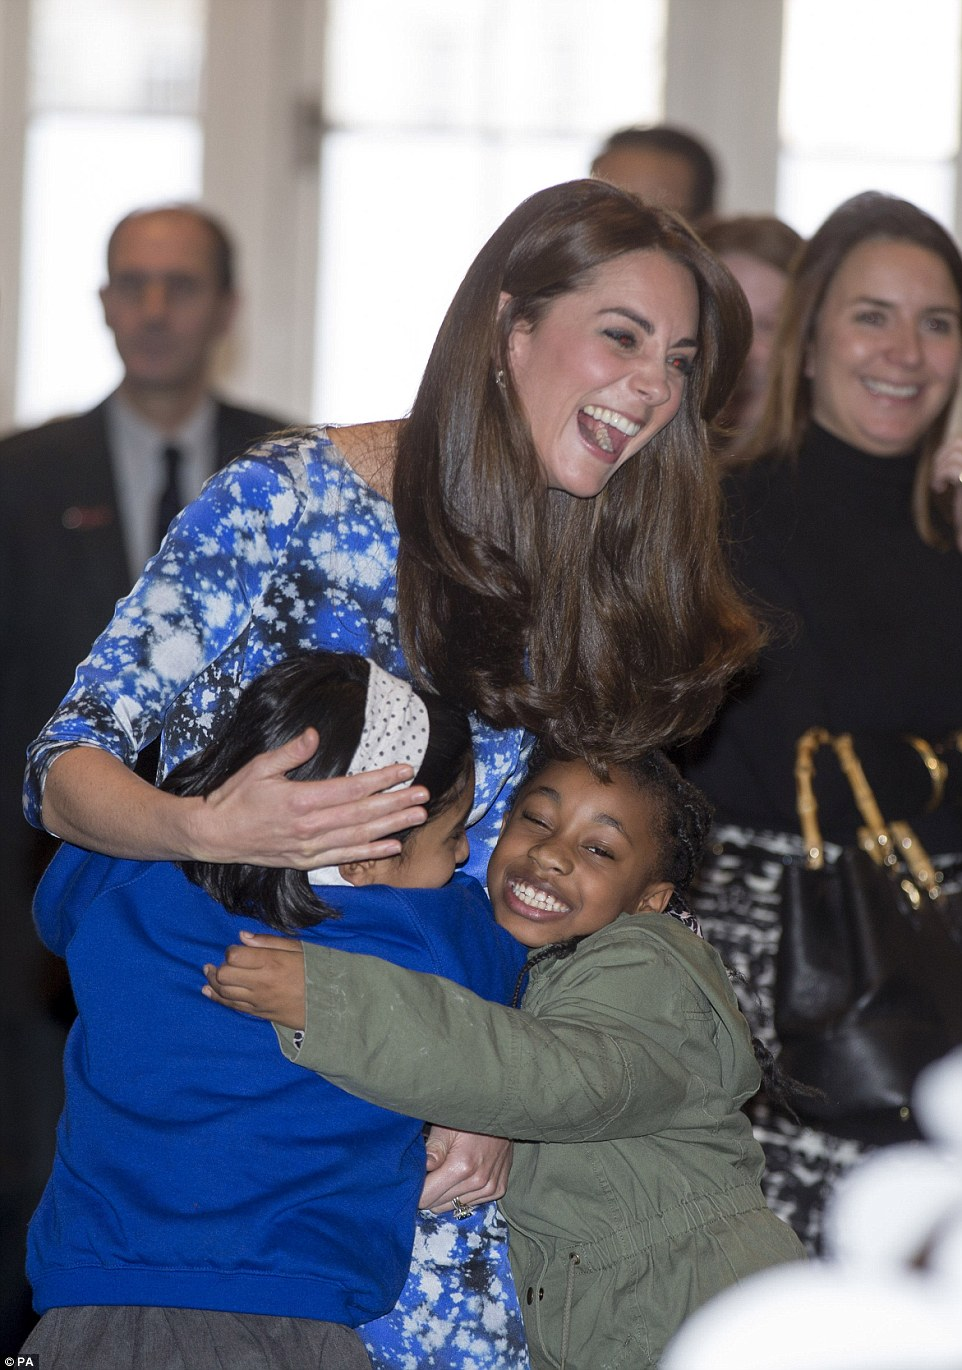 The Duchess of Cambridge proved to be a hit as she was showered with hugs from children during the visit